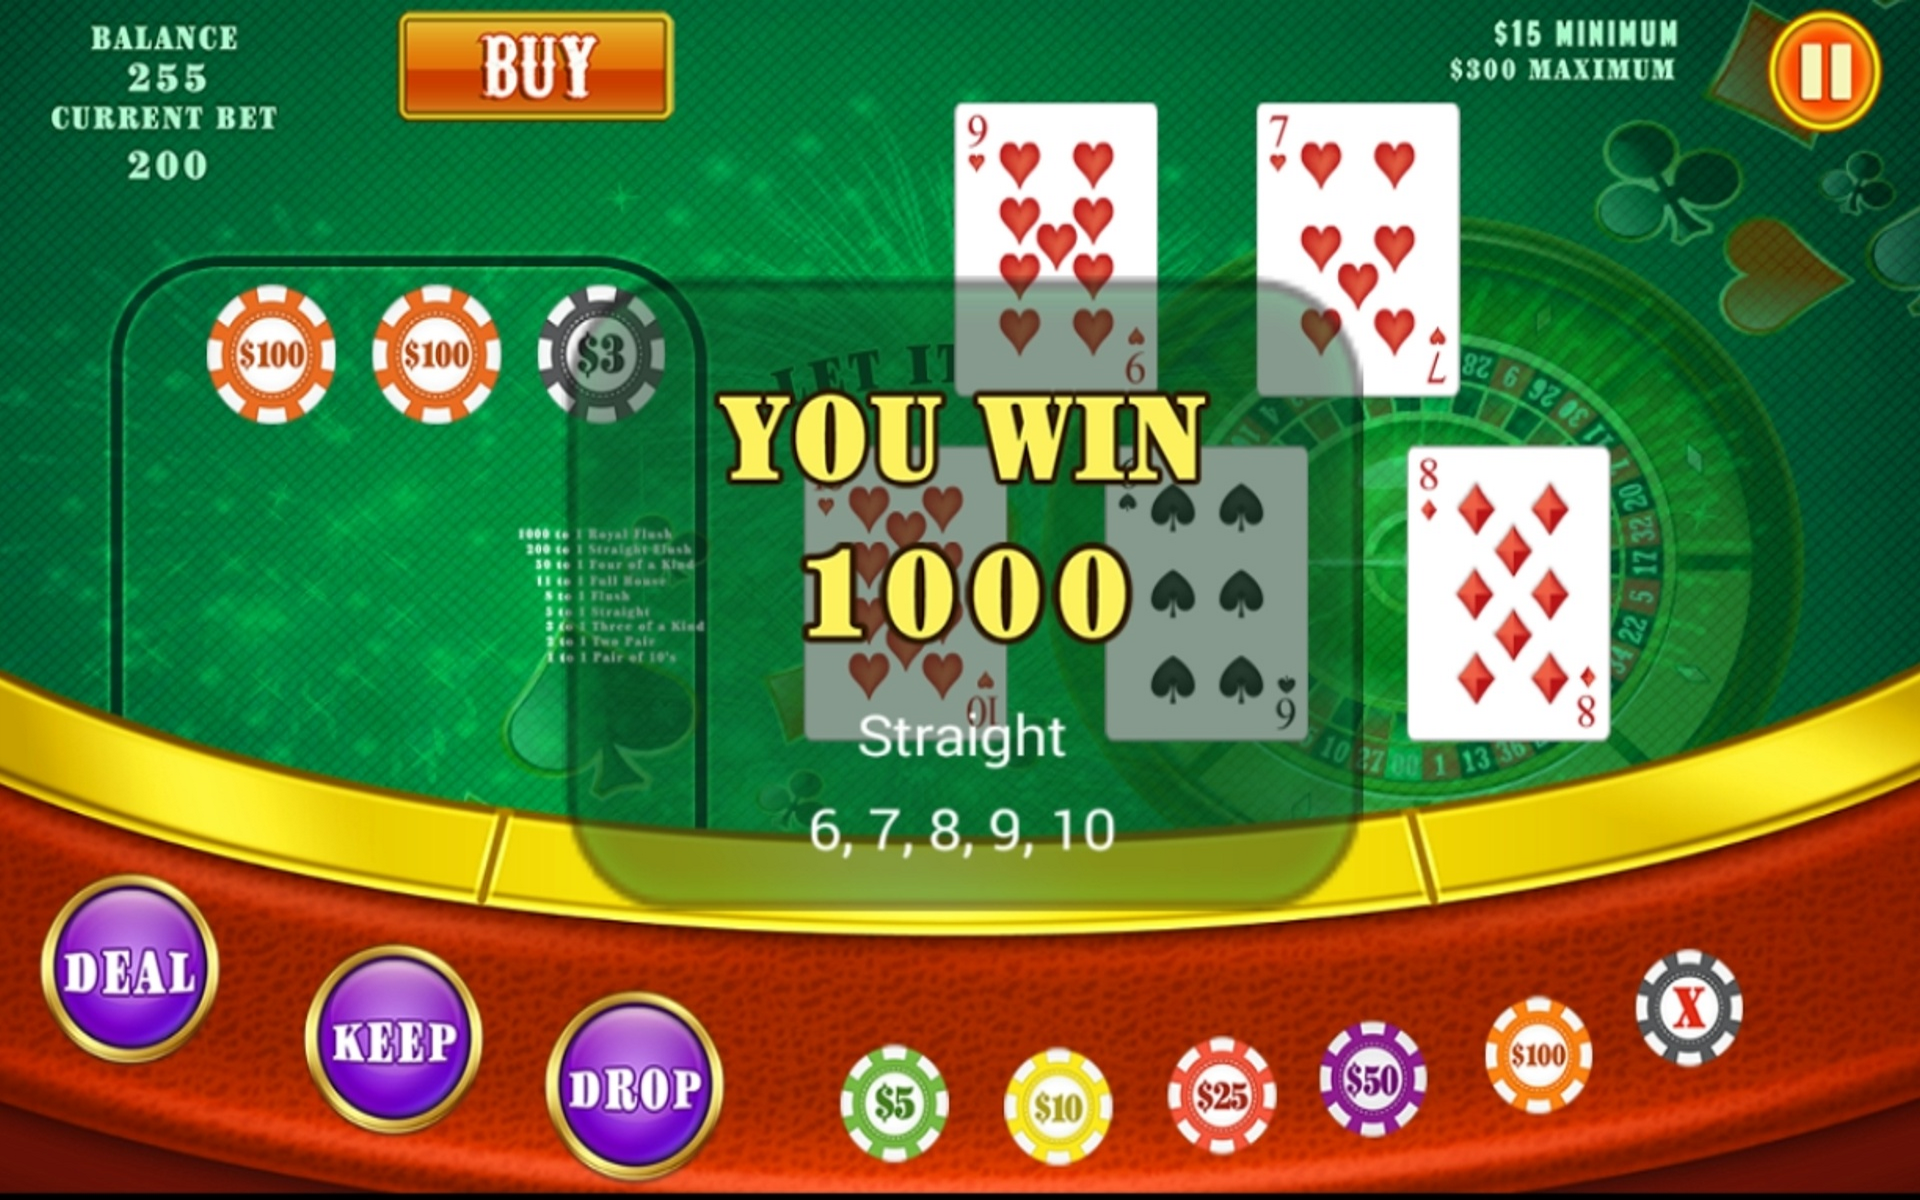 Texas holdem poker giochi.it